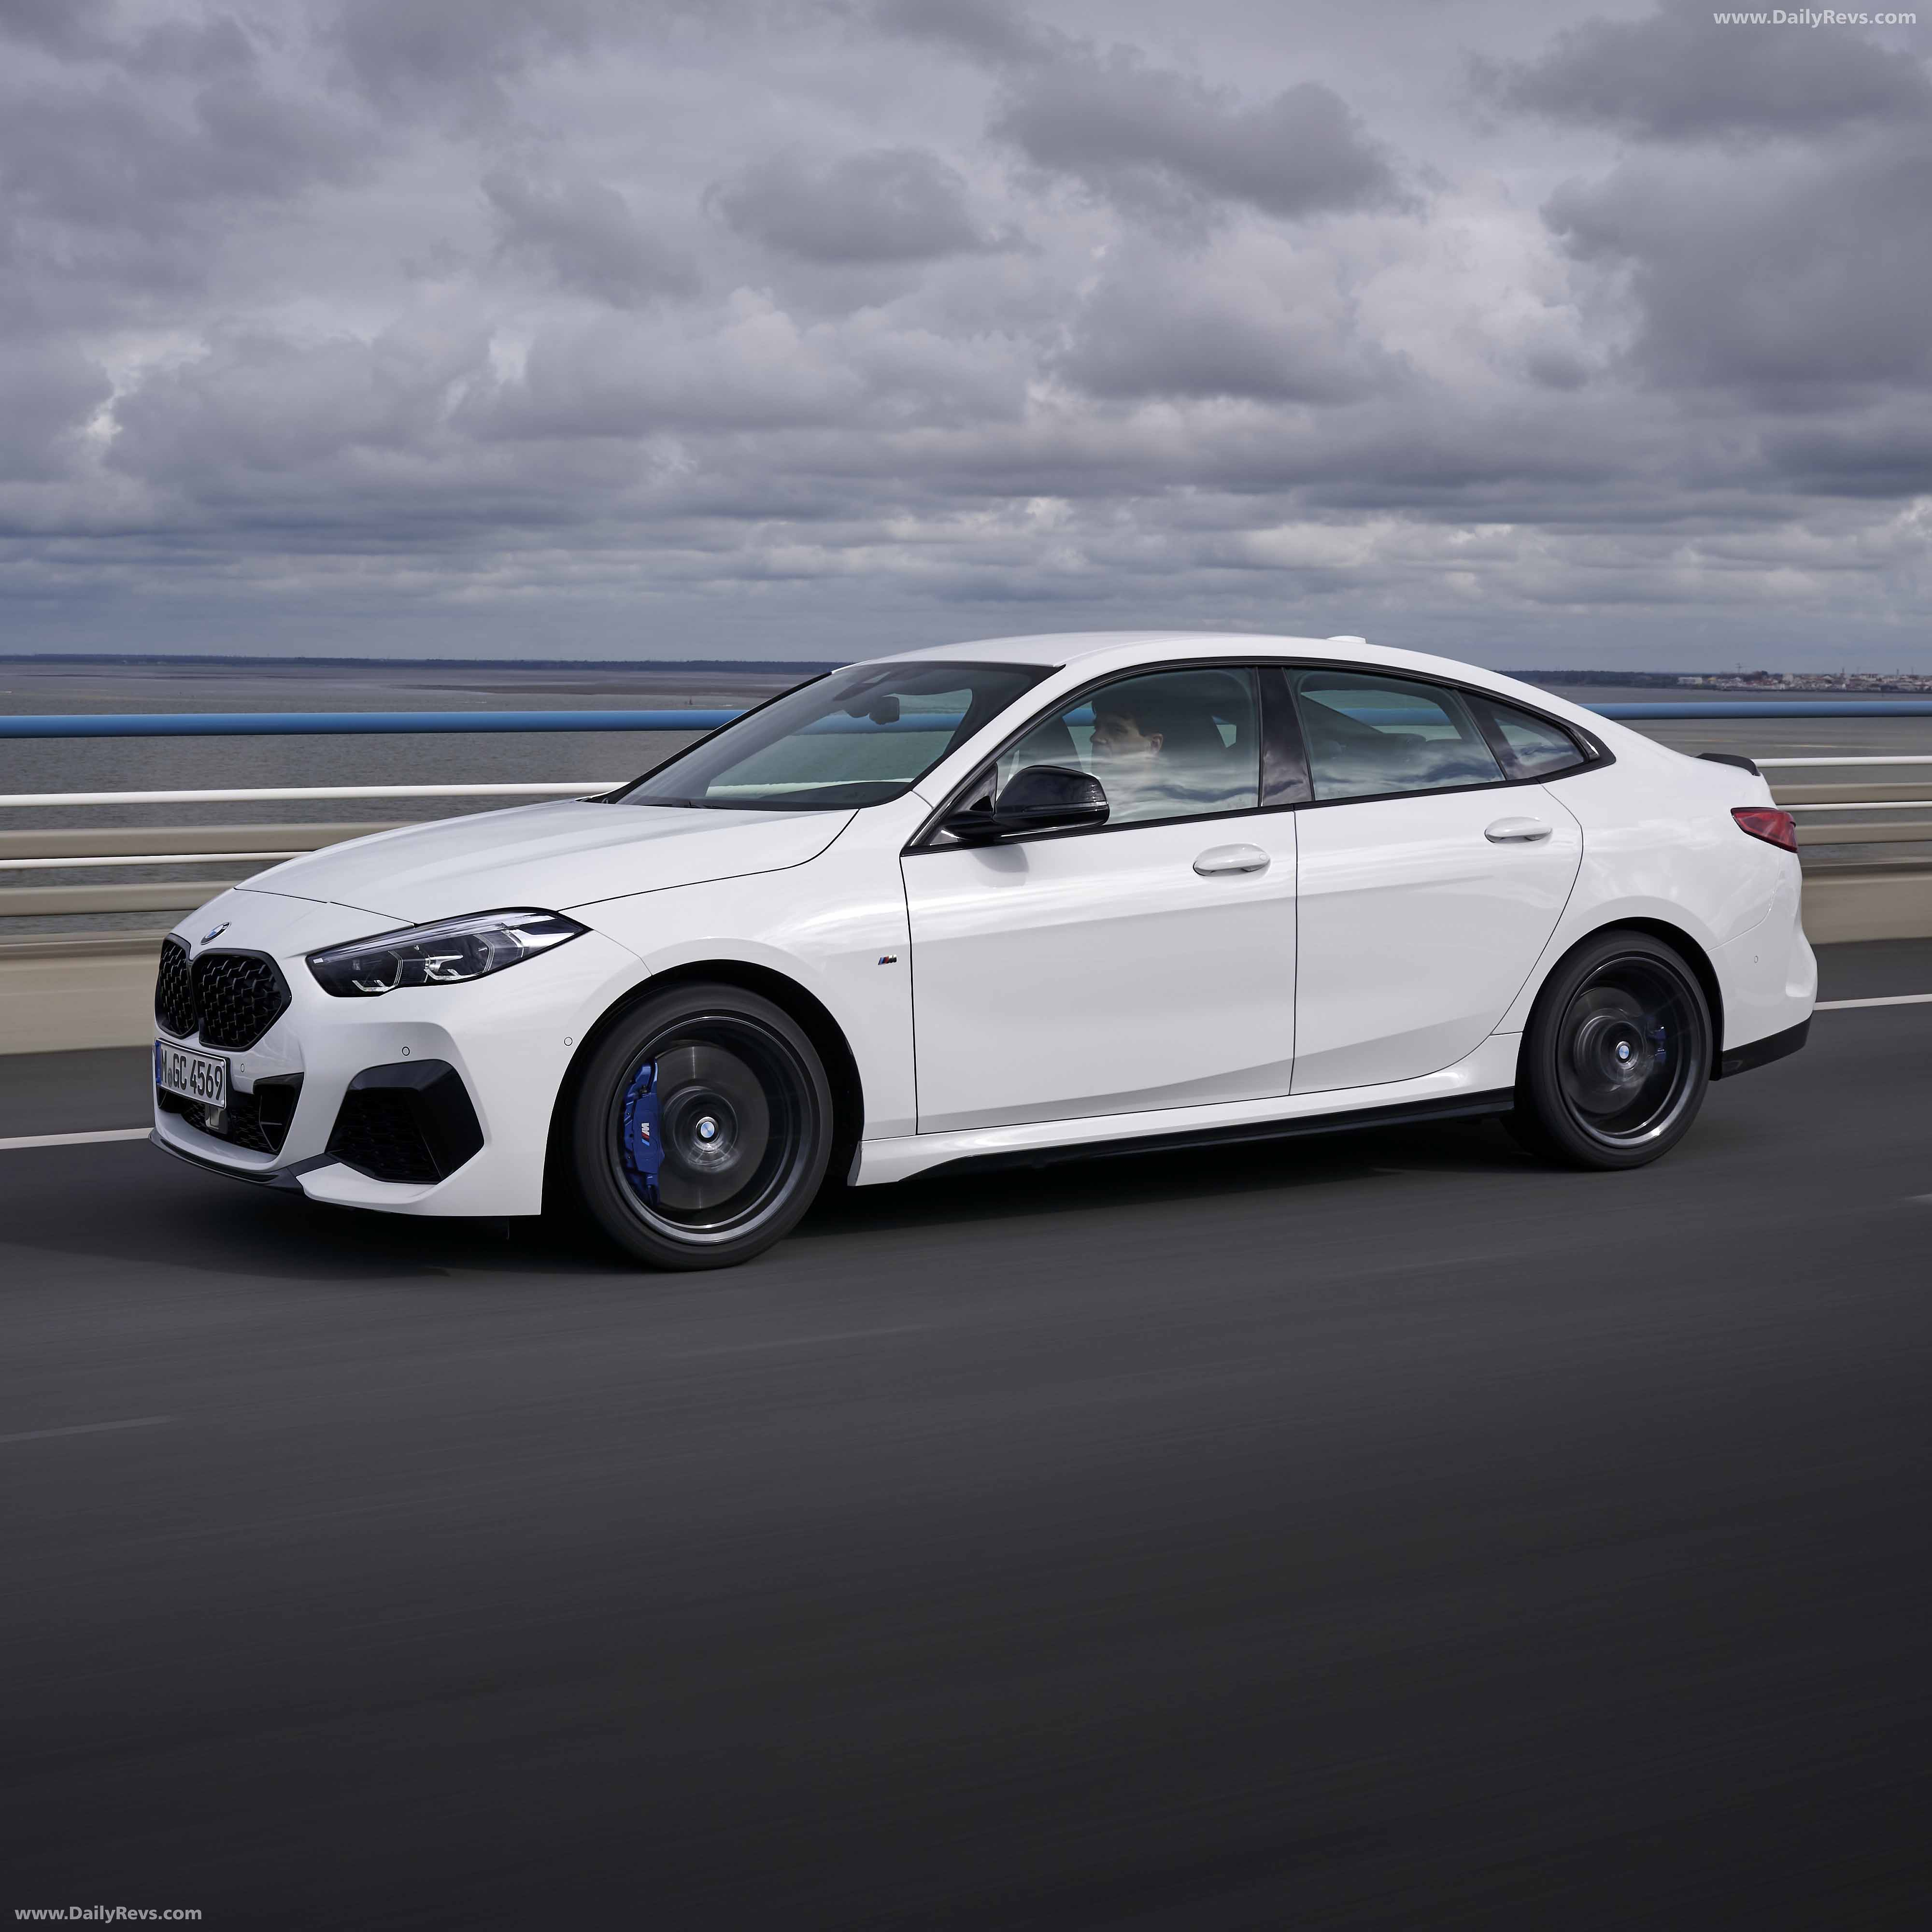 New 2020 Bmw 2 Series Gran Coupe: 2020 BMW M235i XDrive Gran Coupe